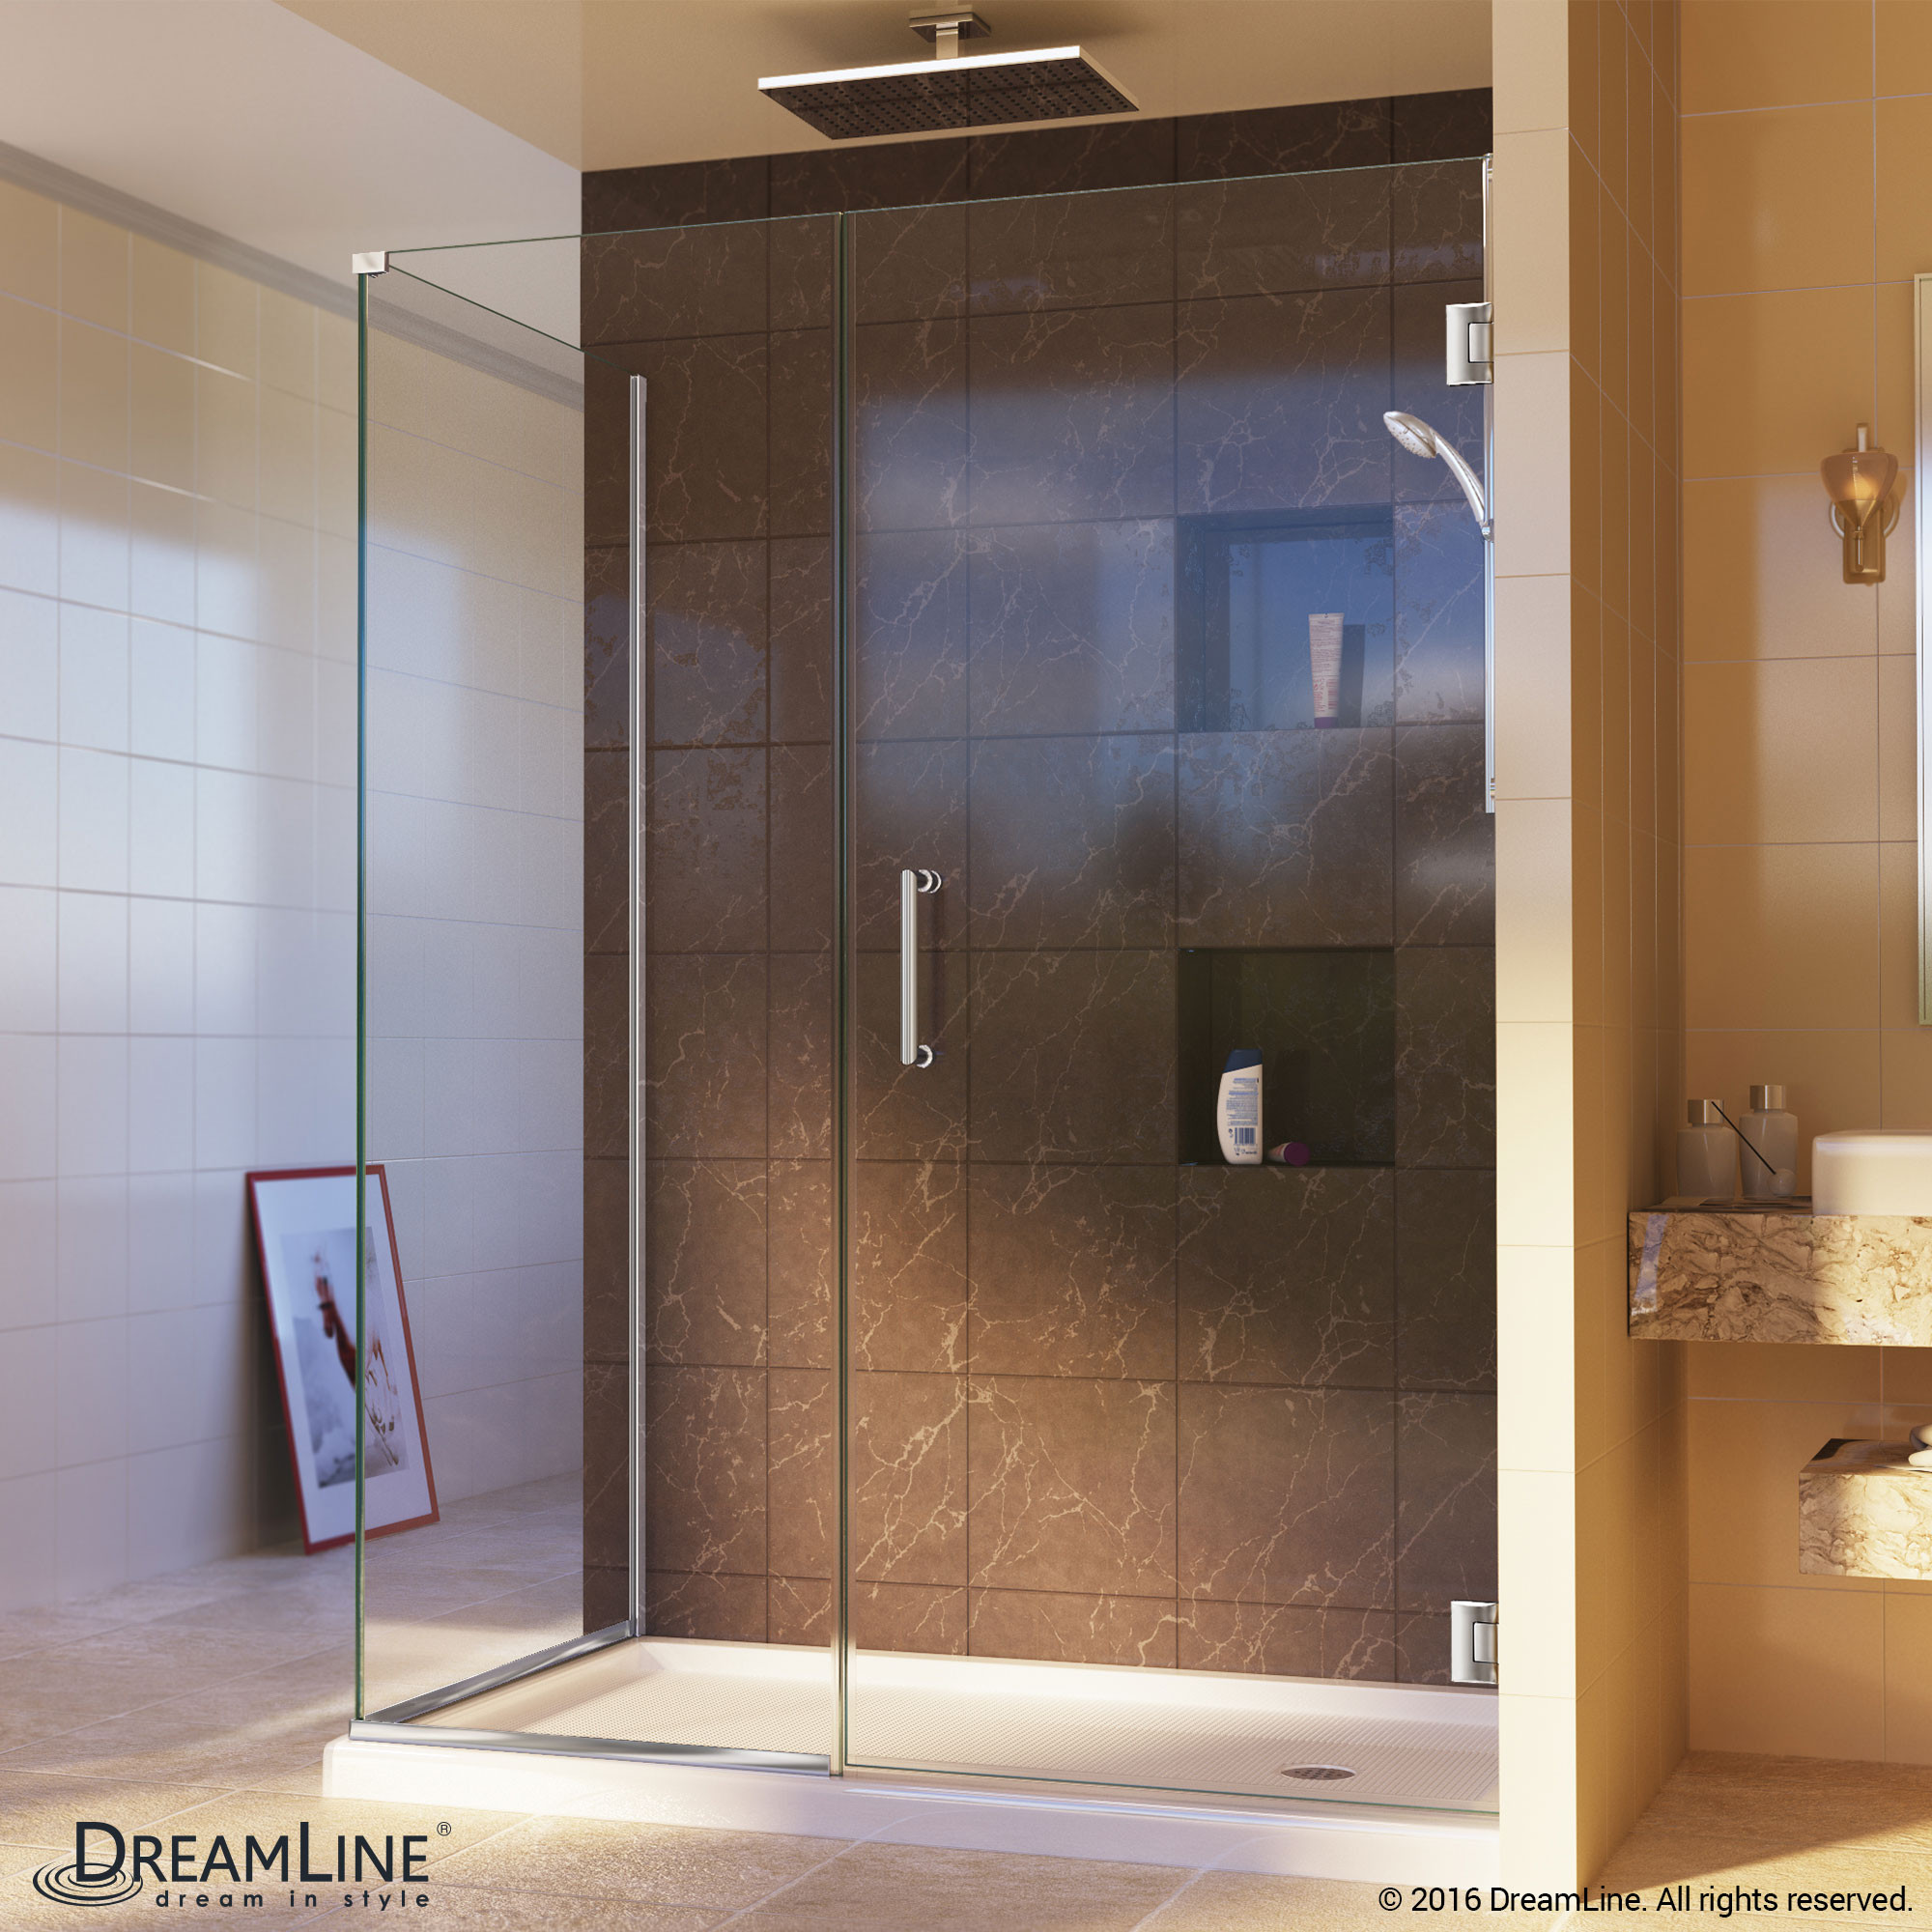 DreamLine SHEN-24315340-01 Unidoor Plus Hinged Shower Enclosure In Chrome Finish Hardware